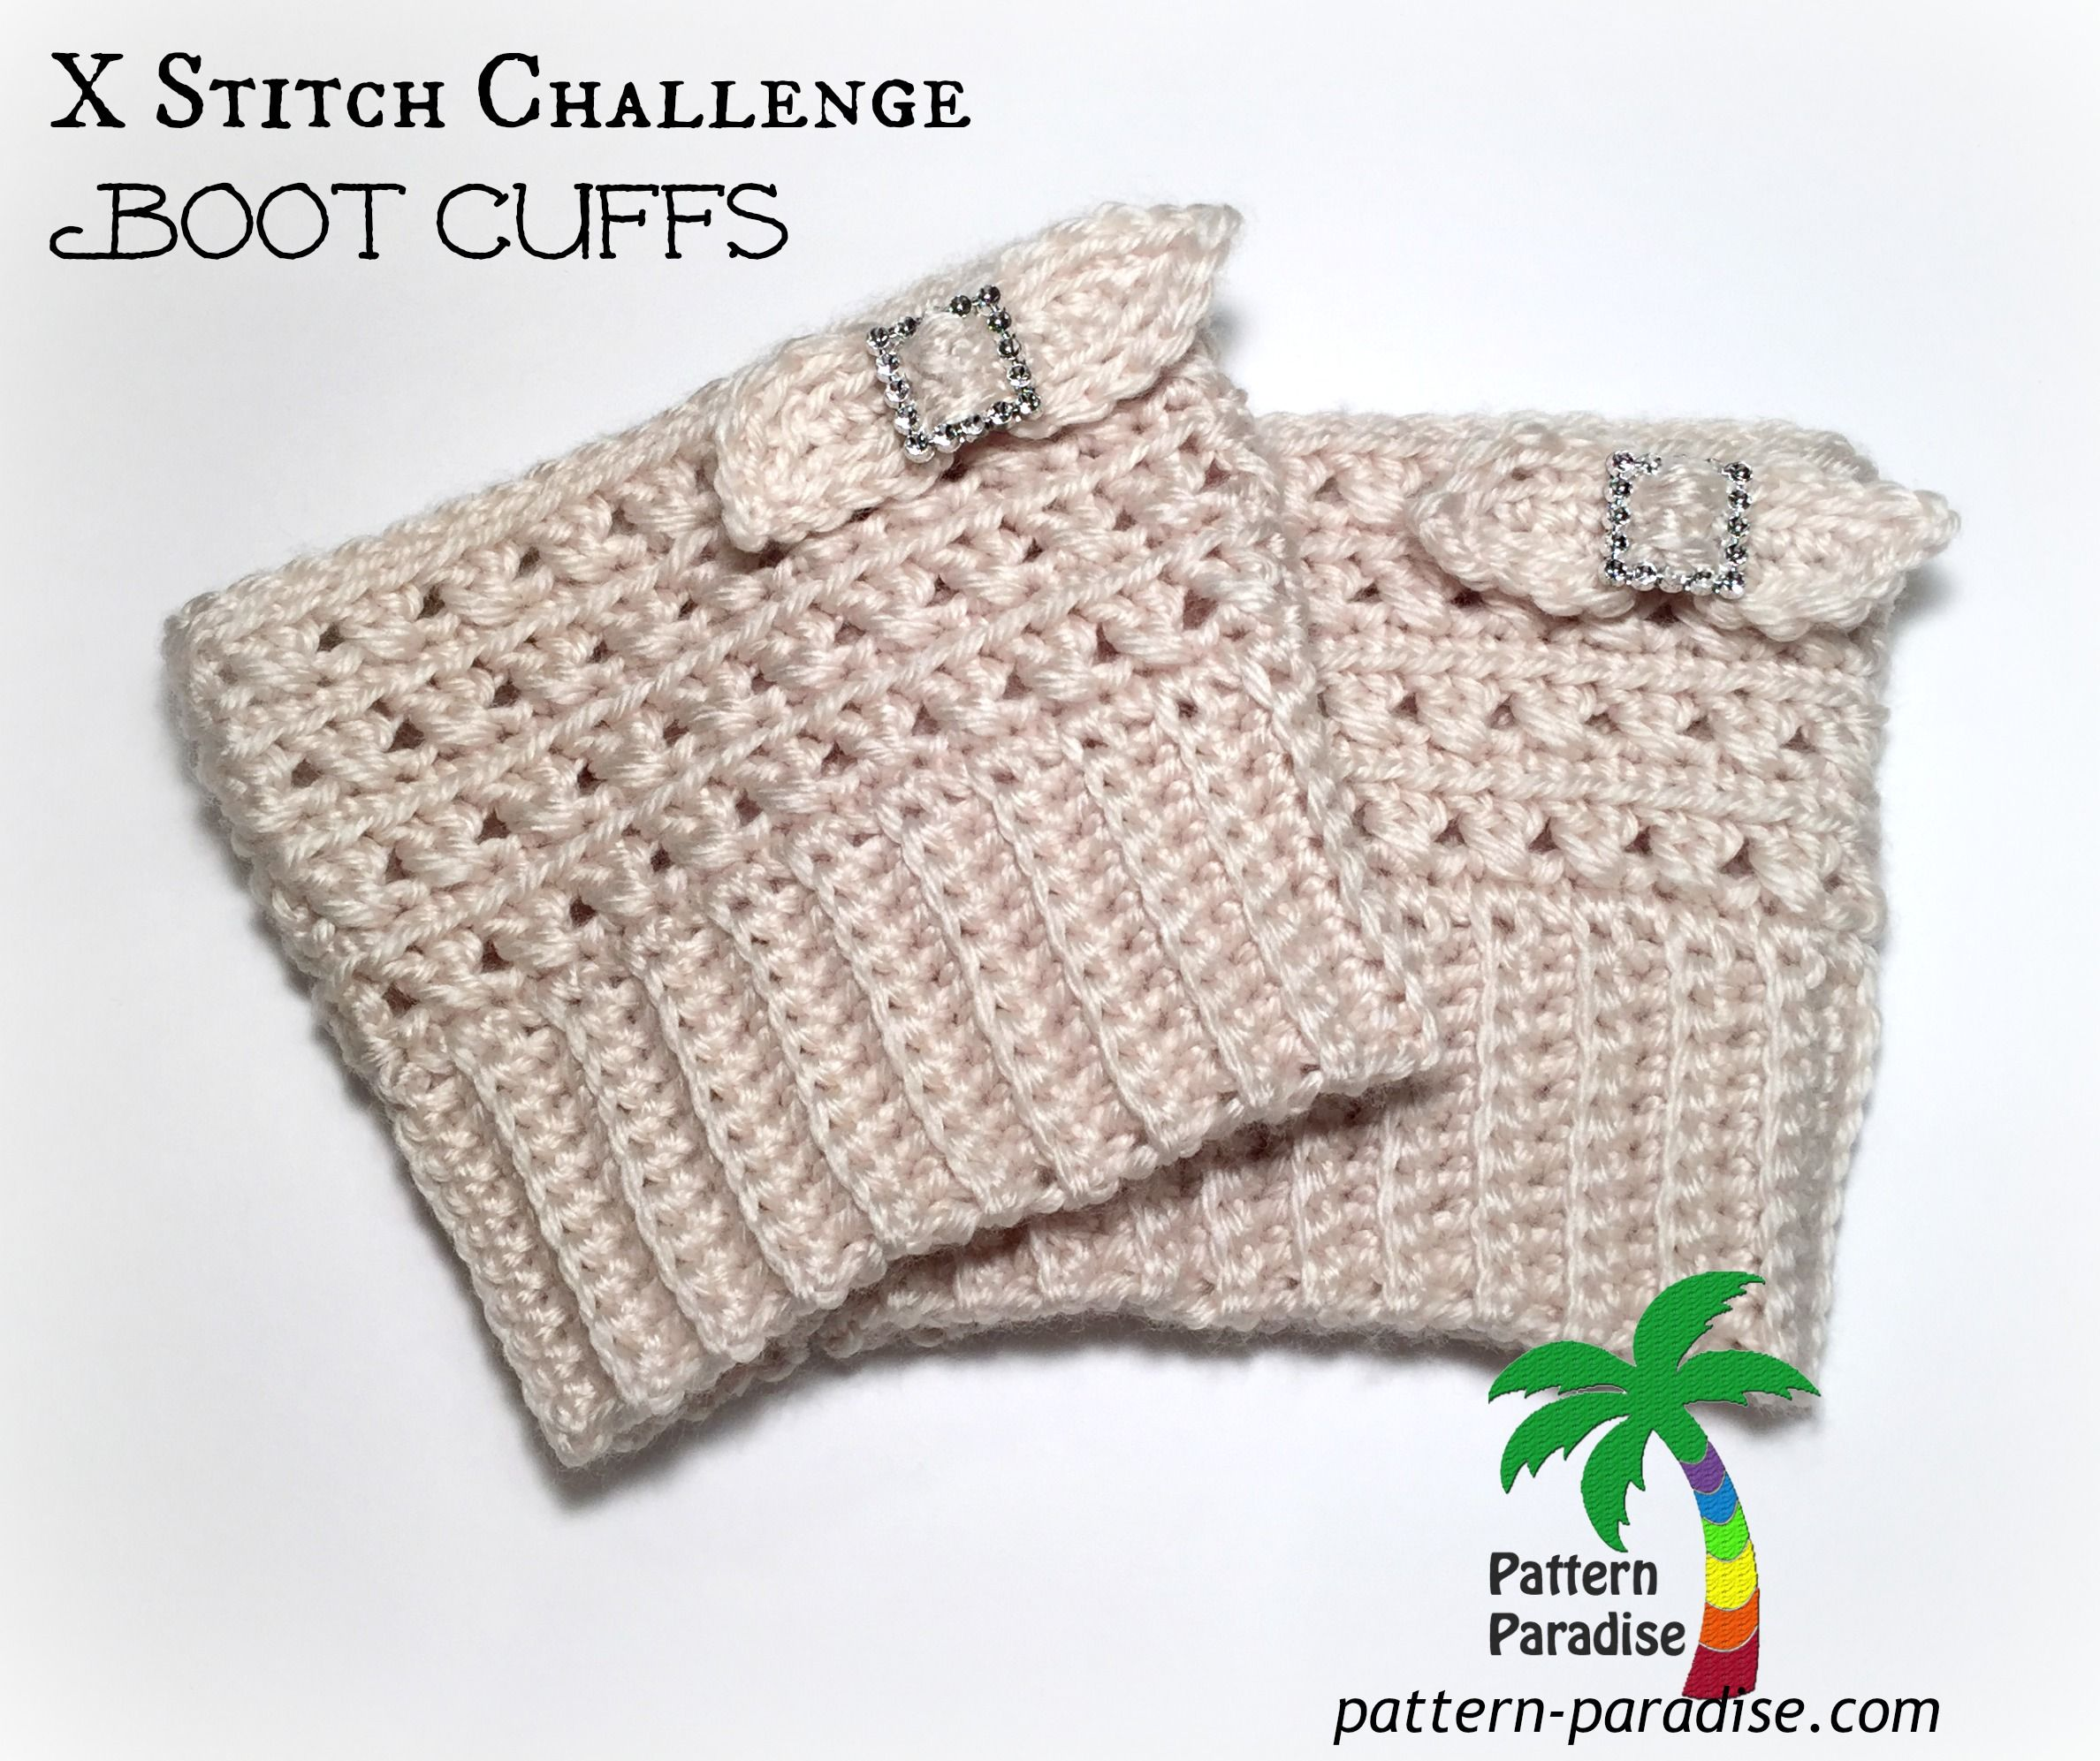 Xst boot cuffs title by pattern paradise is a free pattern but x stitch challenge boot cuffs free crochet pattern by pattern paradise bankloansurffo Images